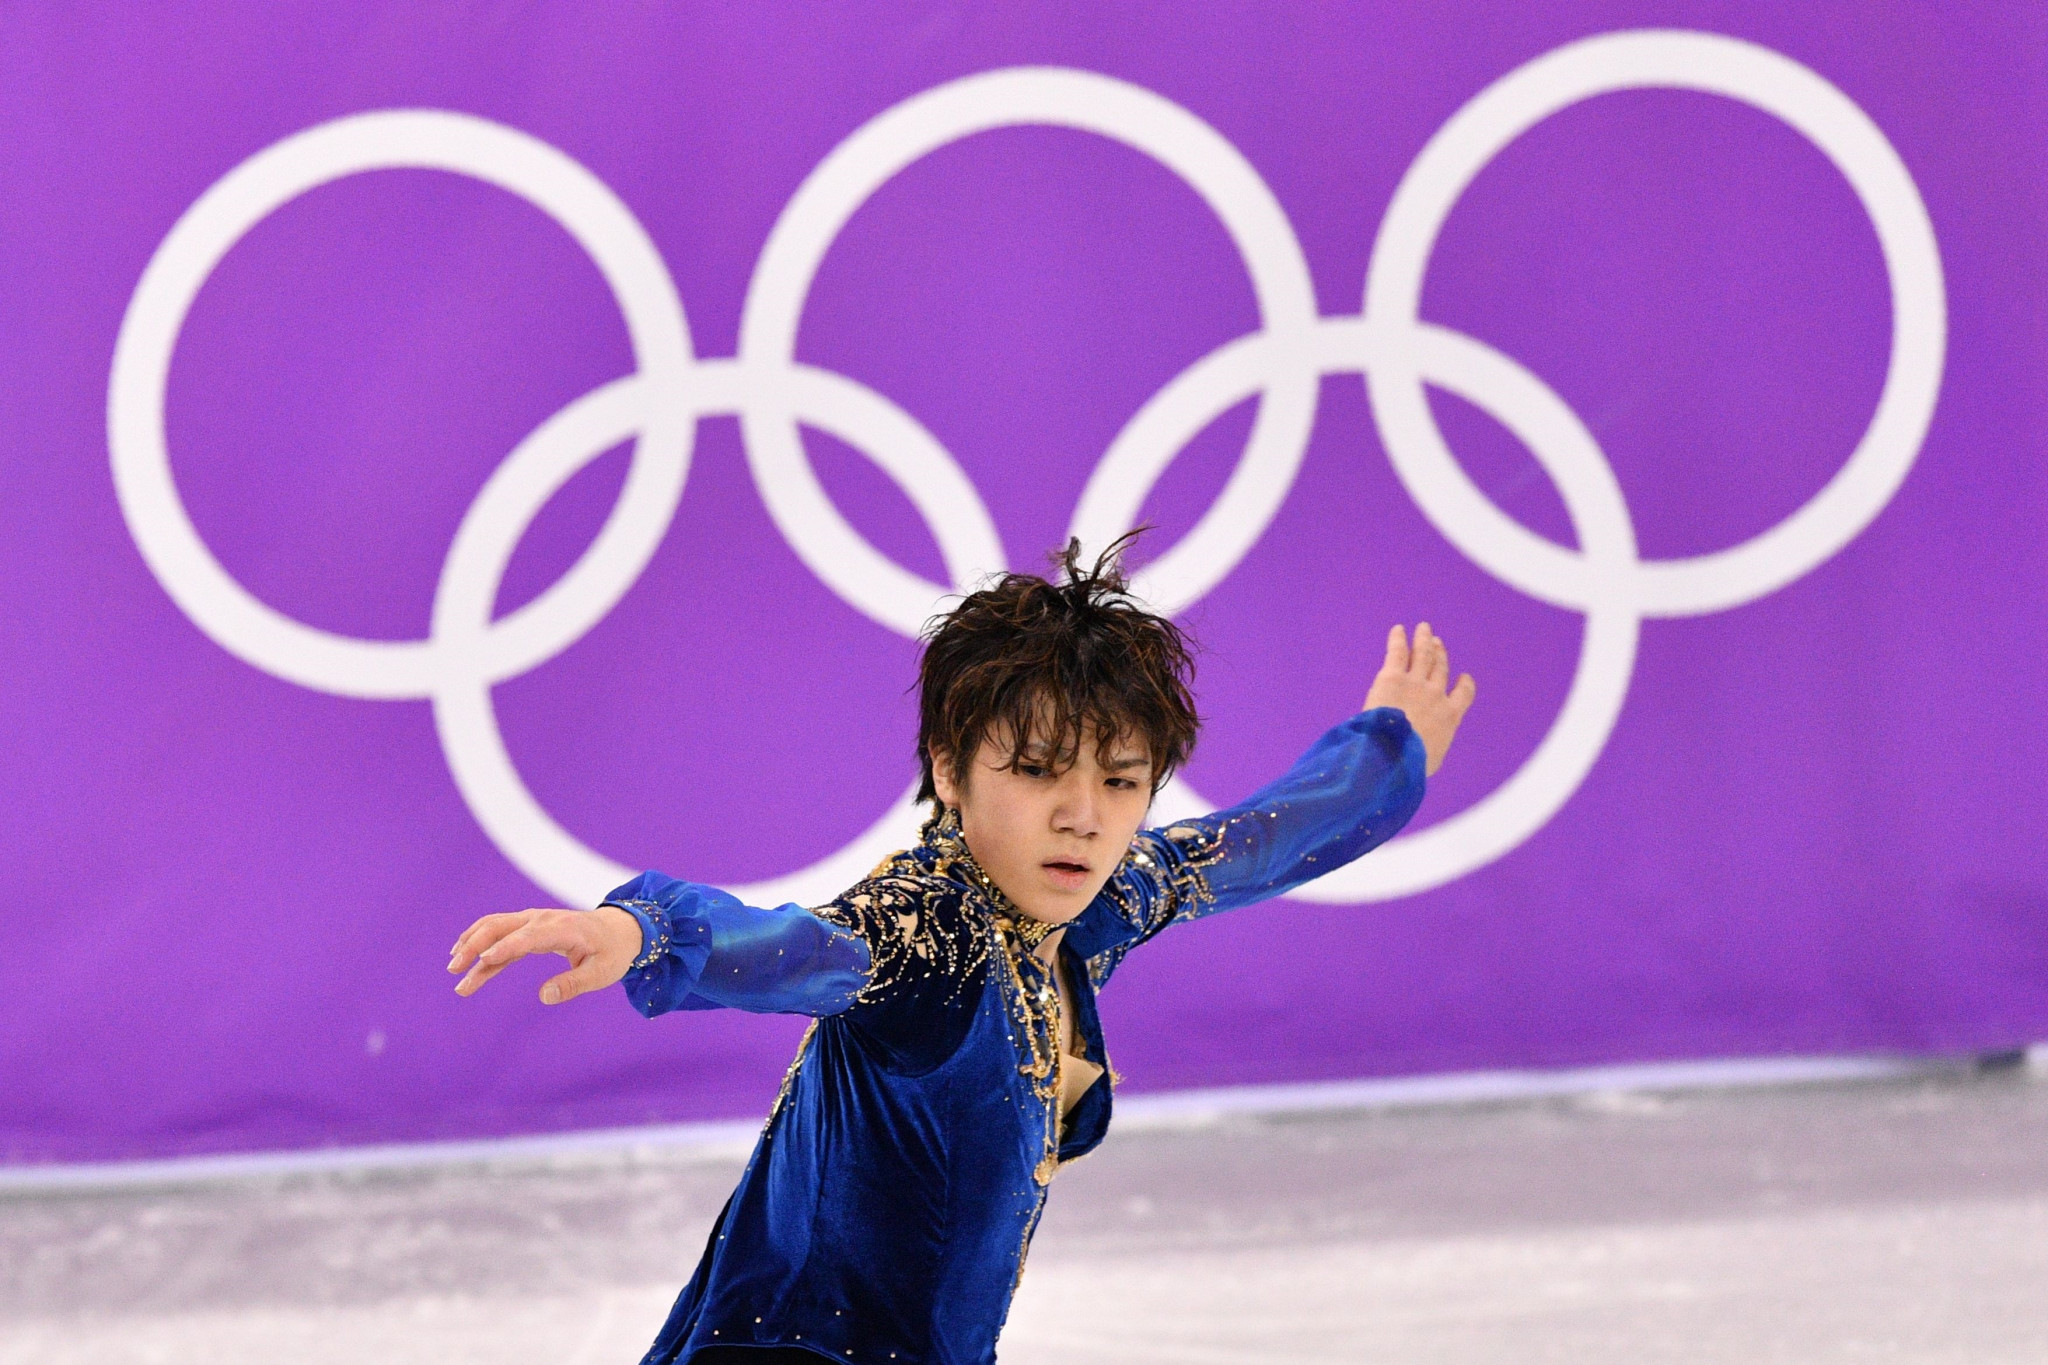 Japan's Shoma Uno had to settle for the silver medal ©Getty Images